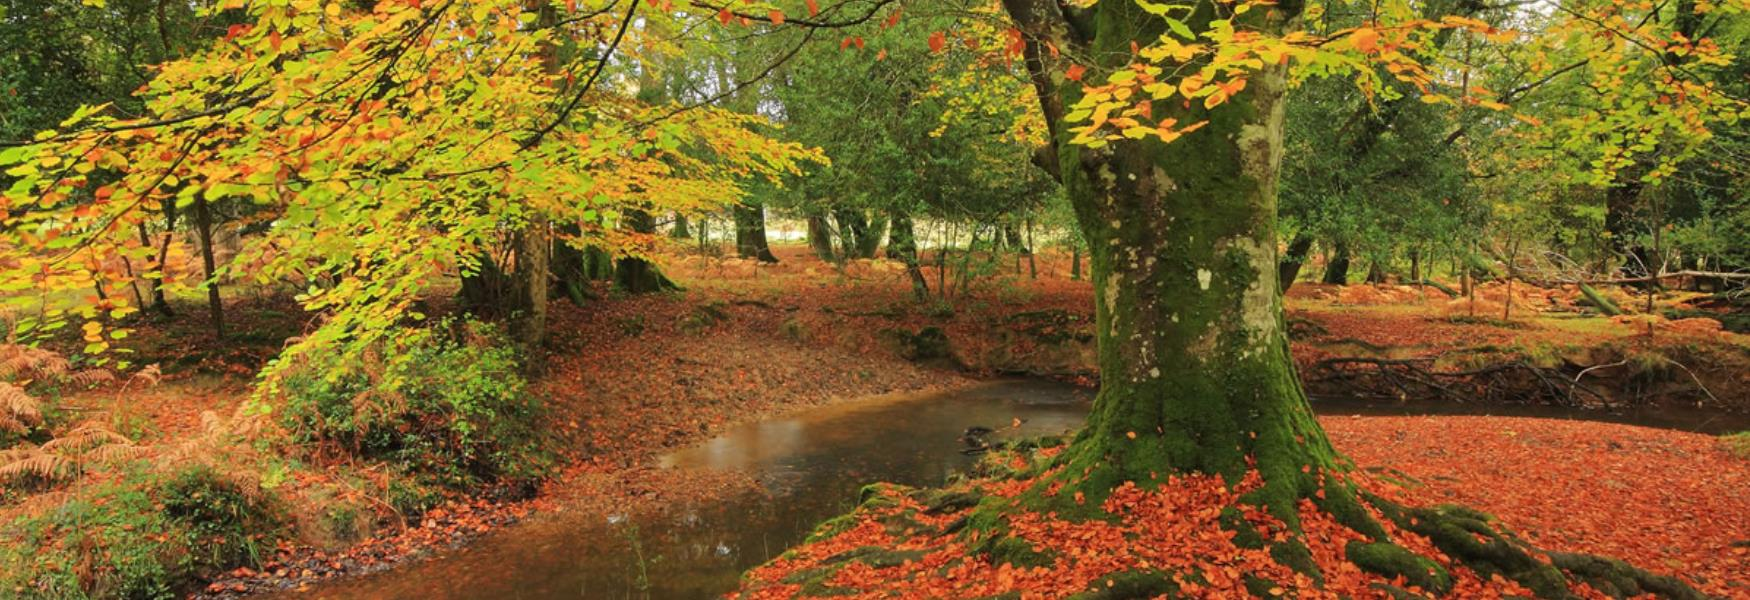 autumn leave and trees in the new forest